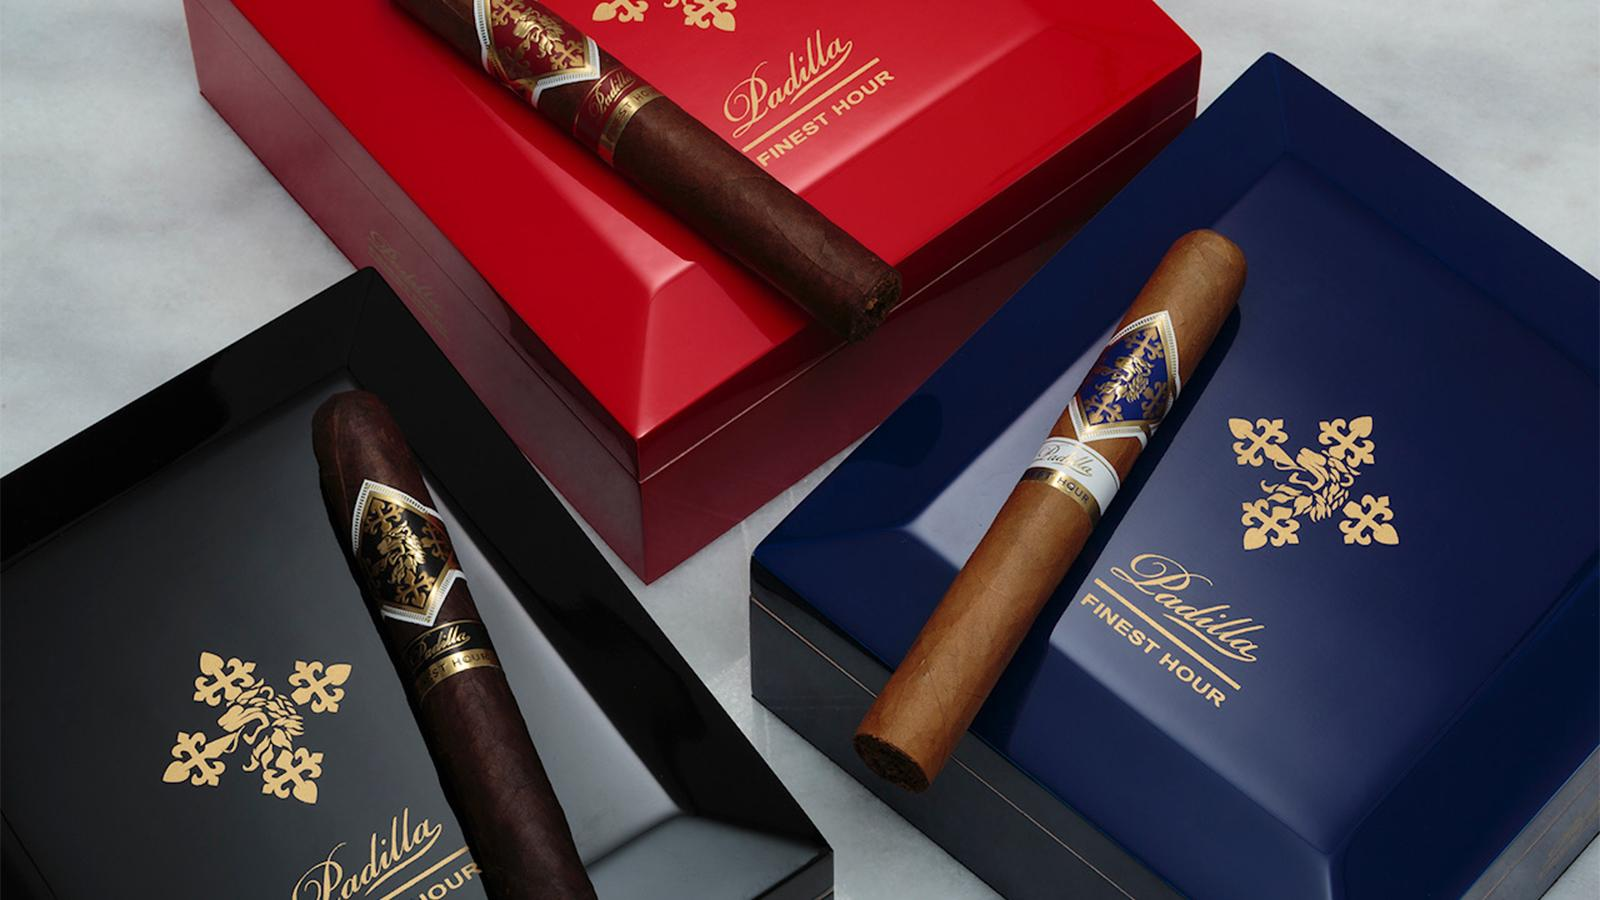 Padilla Finest Hour Shipping this Week